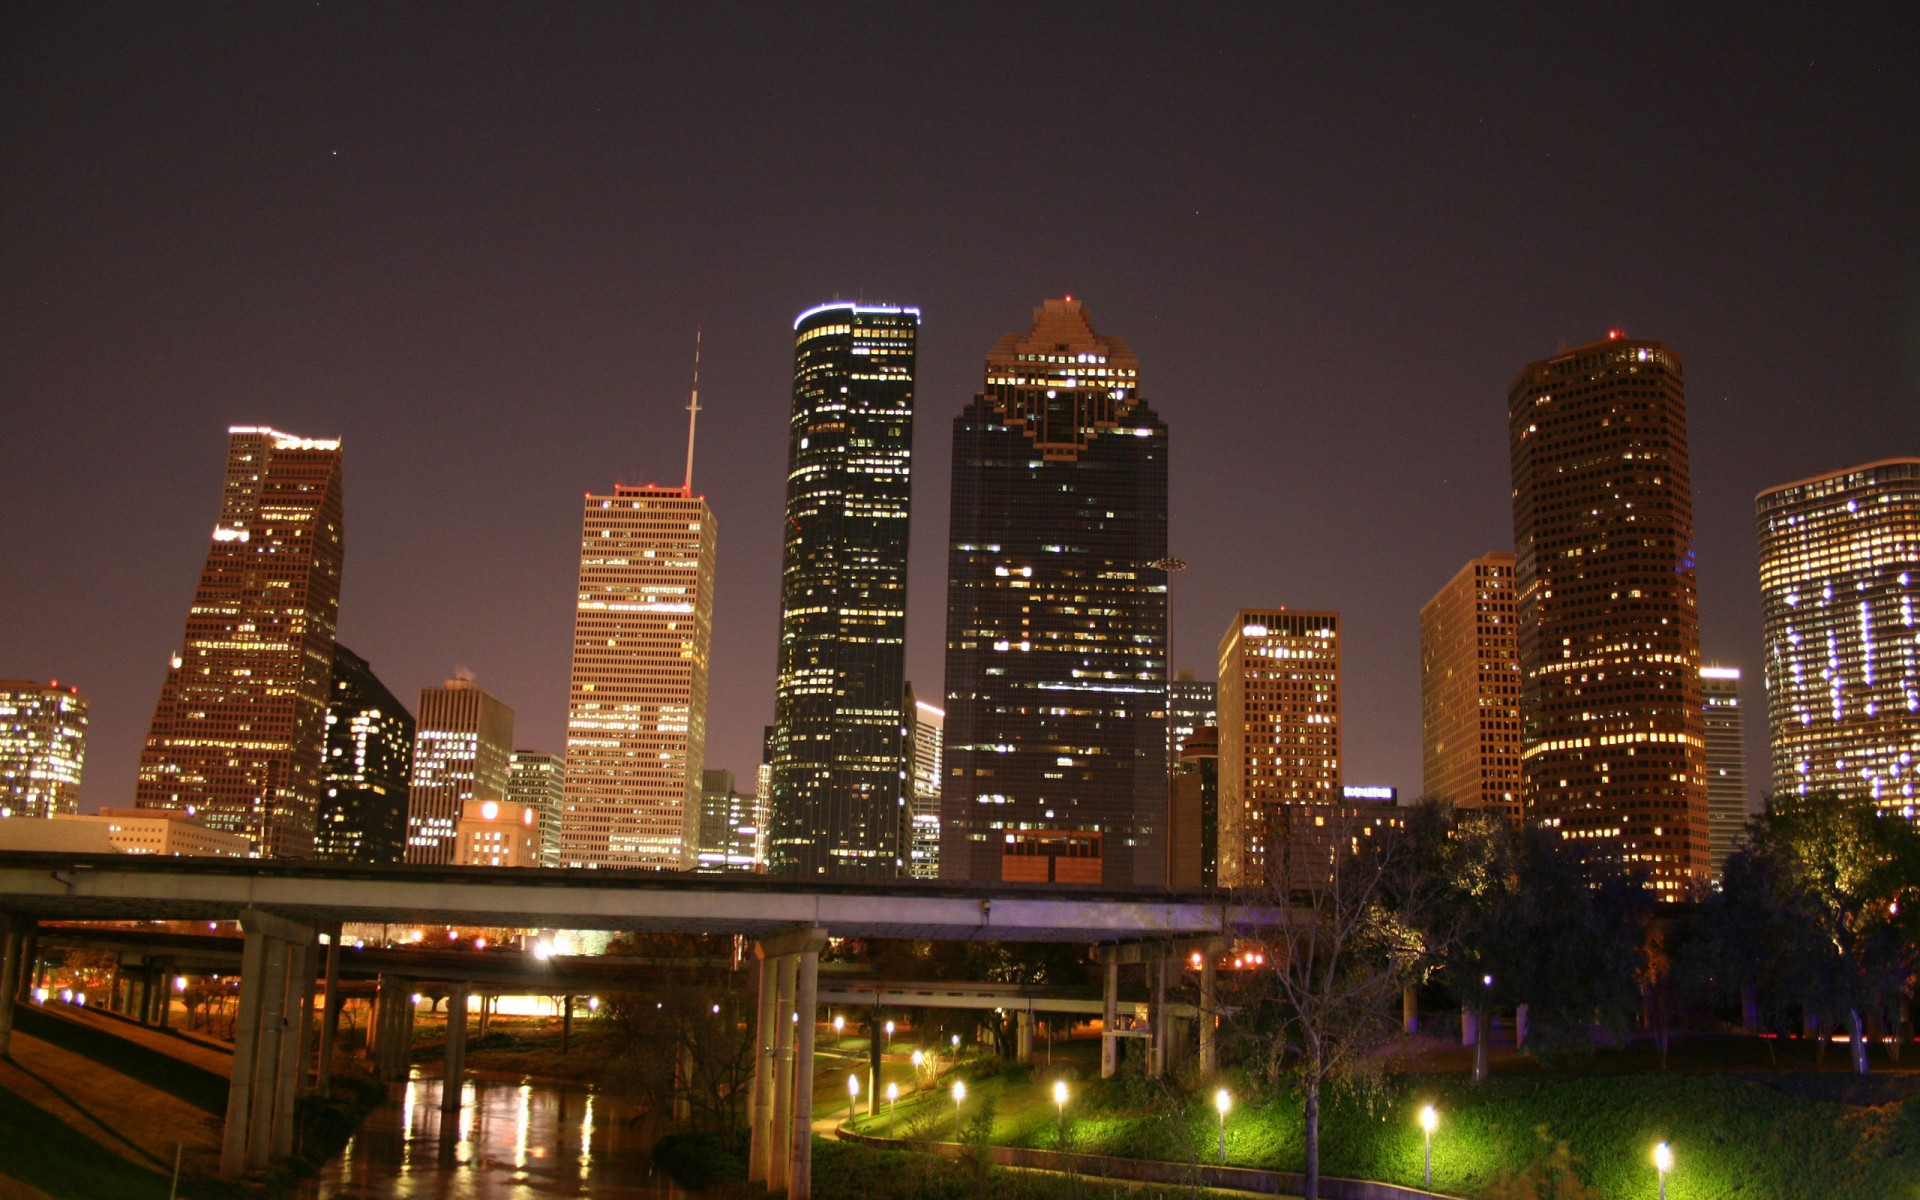 Houston Texas wallpaper 189901 1920x1200